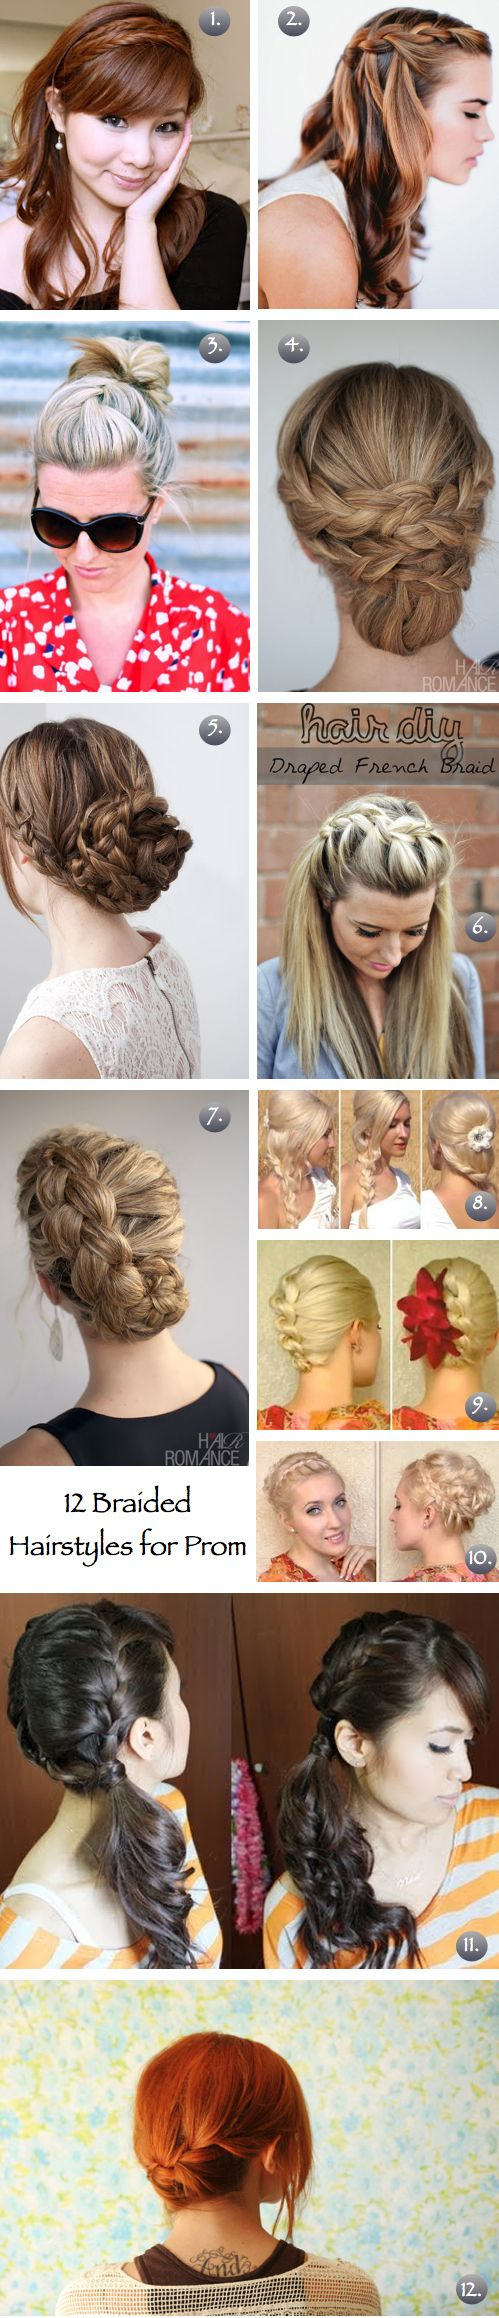 braided prom or wedding hairstyles hairstyles pinterest